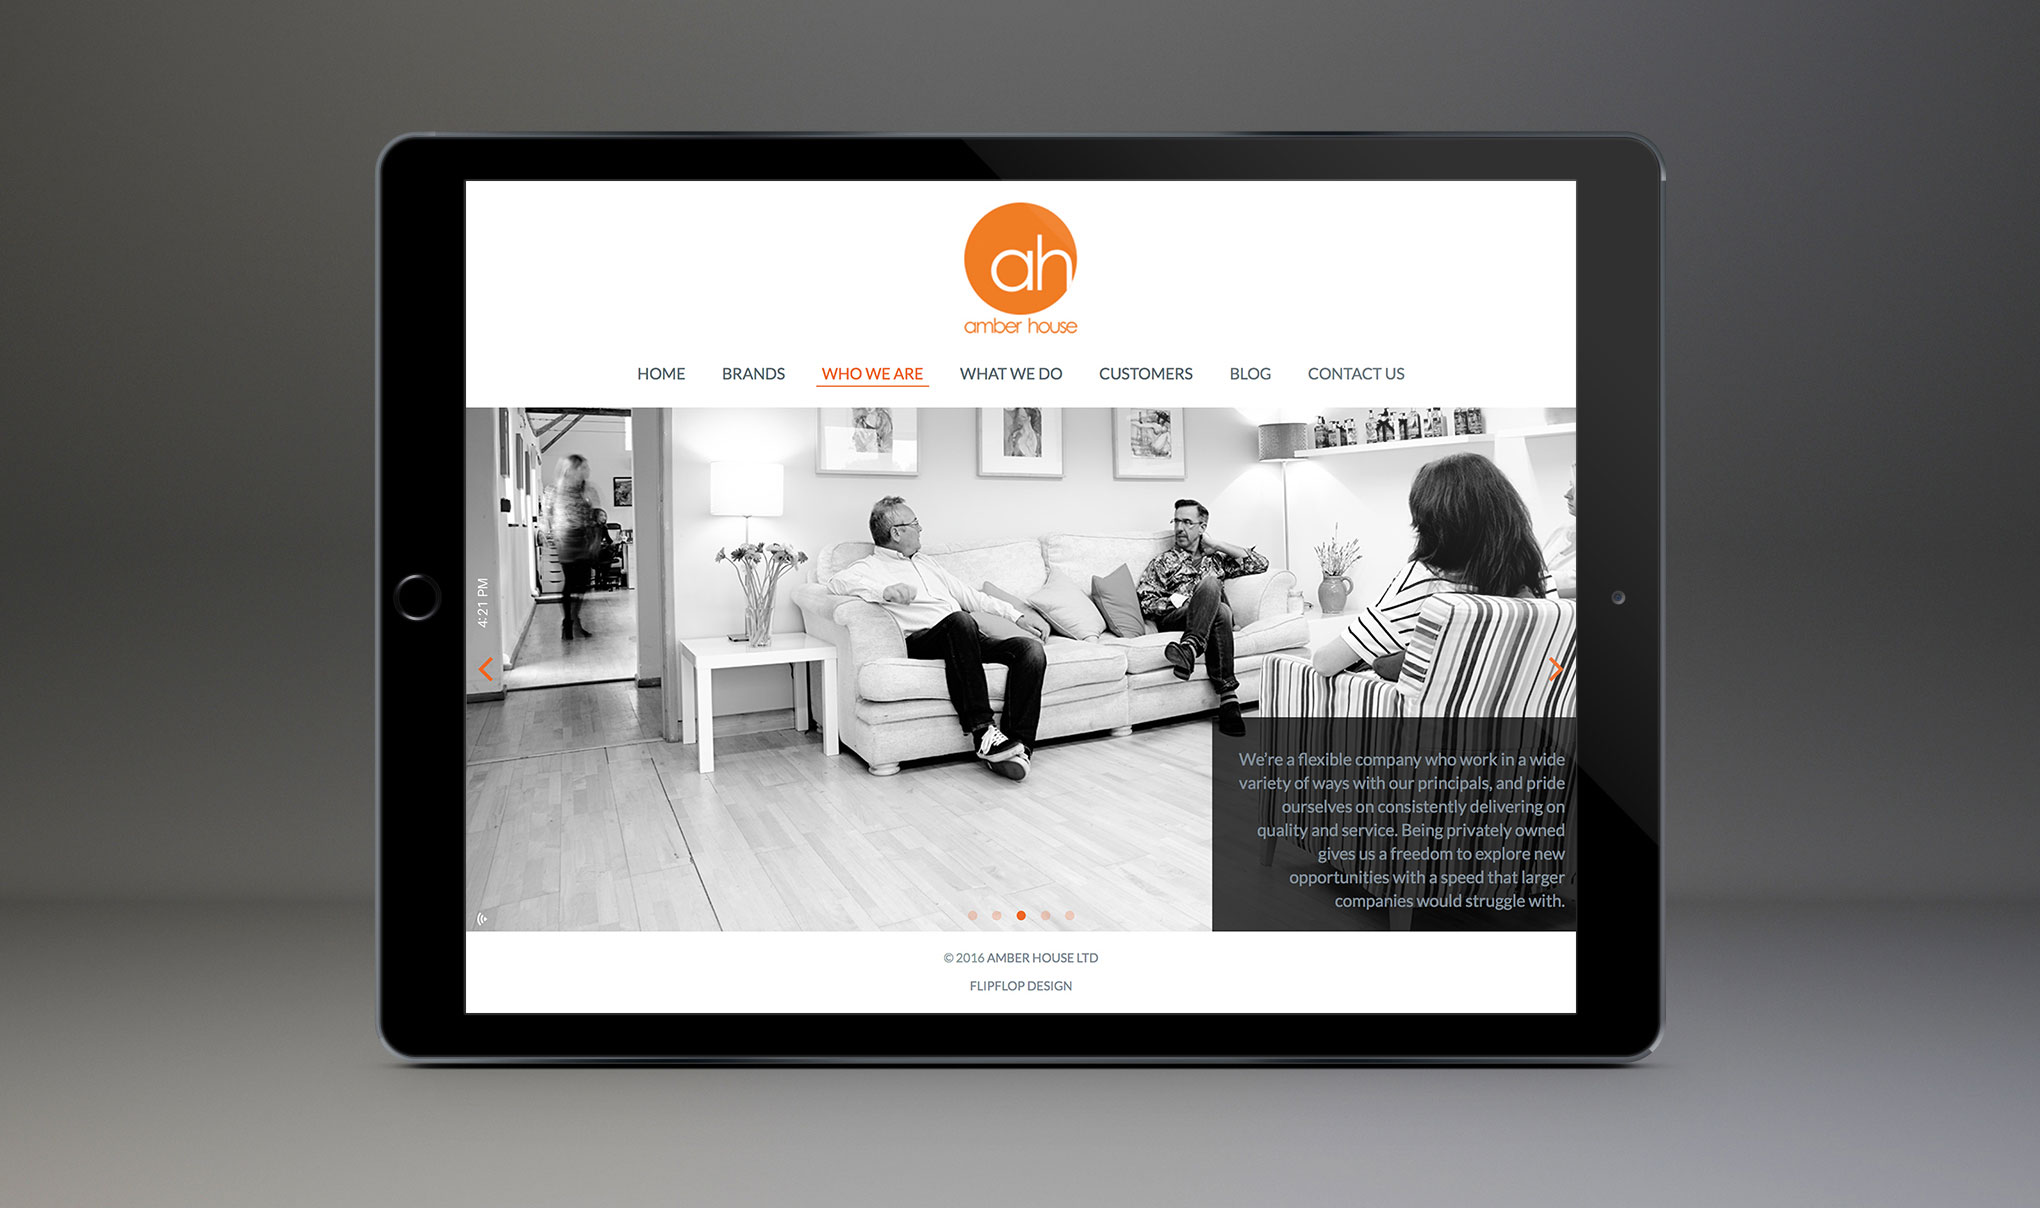 Website design for Amber House Ltd. Image shows the 'who we are' page displayed on an iPad. Website designed and developed by - Flipflop Design Ltd.